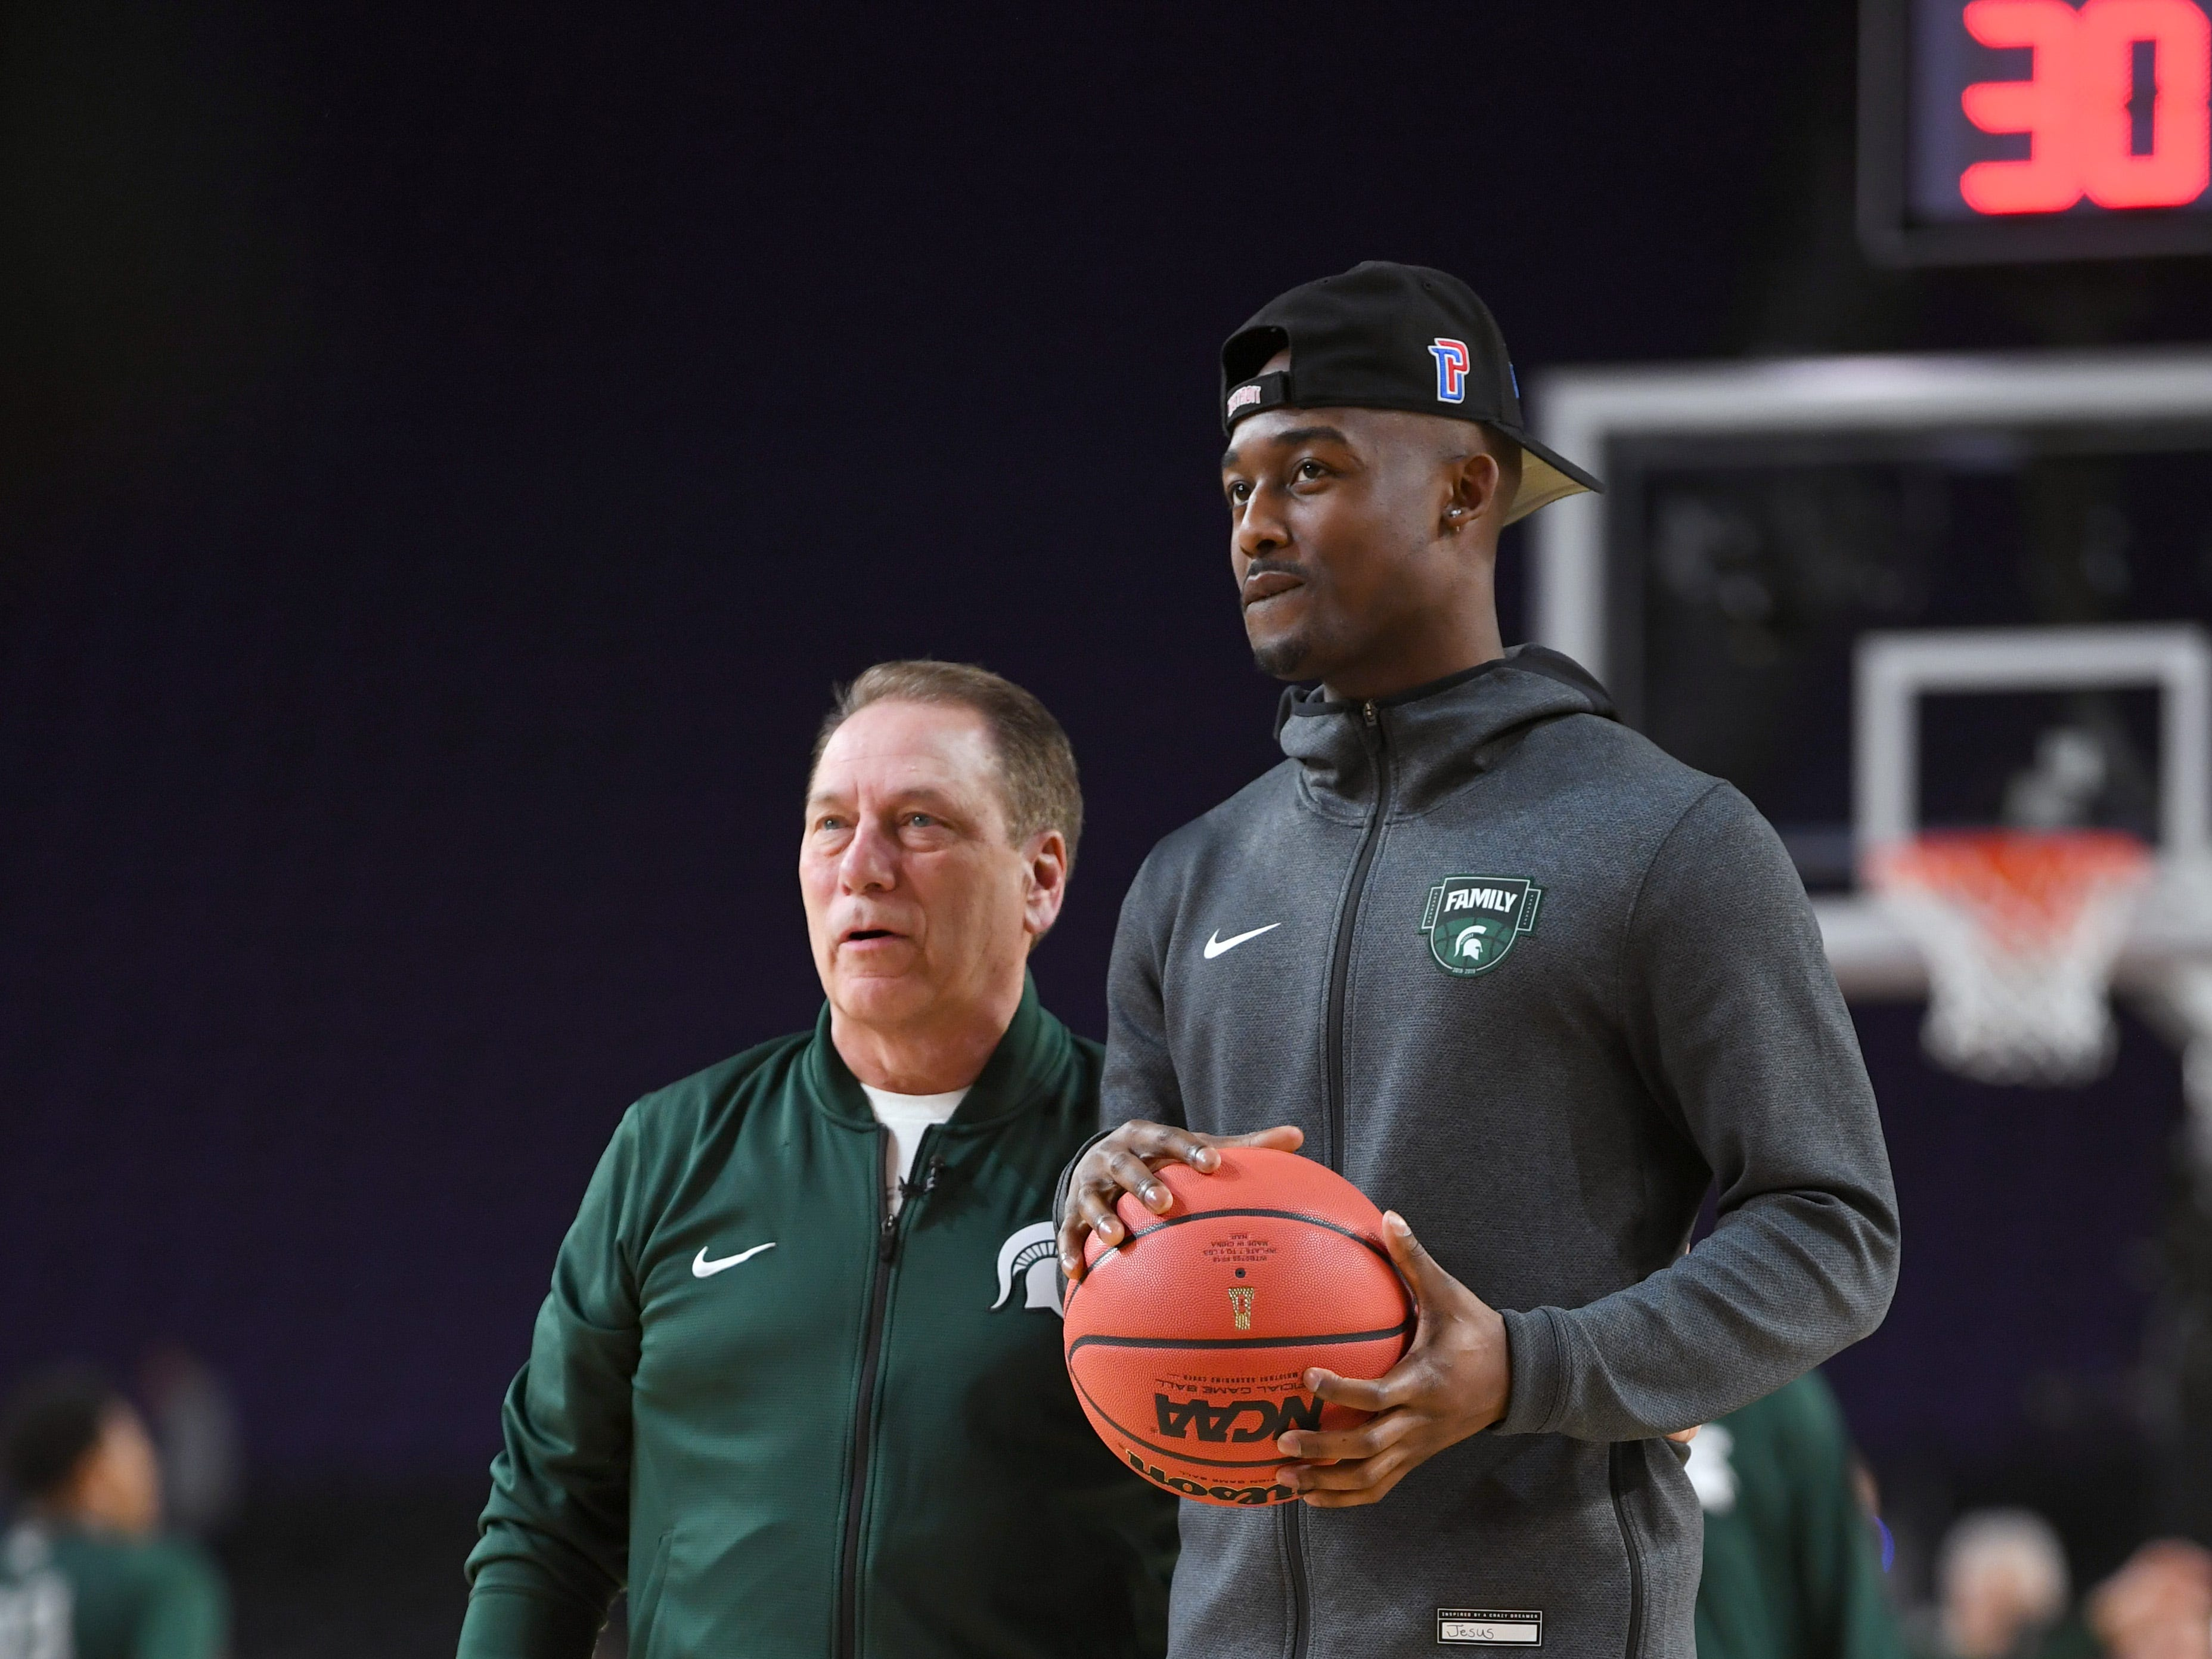 Apr 5, 2019; Minneapolis, MN, USA; Michigan State Spartans head coach Tom Izzo (left) and injured guard Joshua Langford (1) during practice for the 2019 men's Final Four at US Bank Stadium. Mandatory Credit: Bob Donnan-USA TODAY Sports